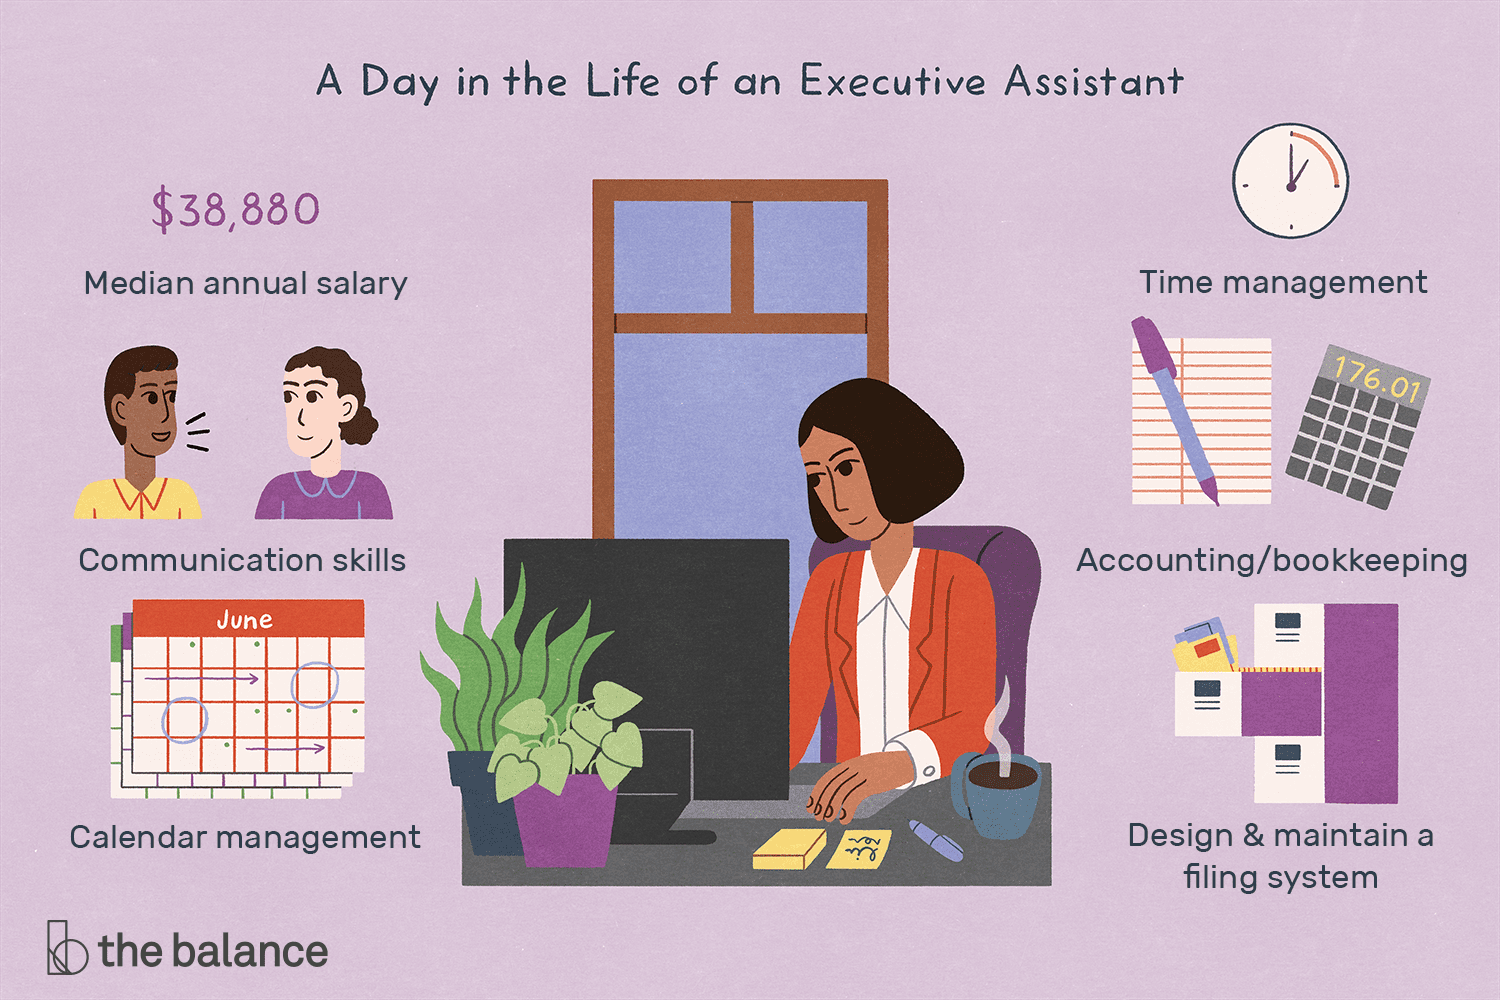 Executive Assistant Job Description: Salary, Skills, & More